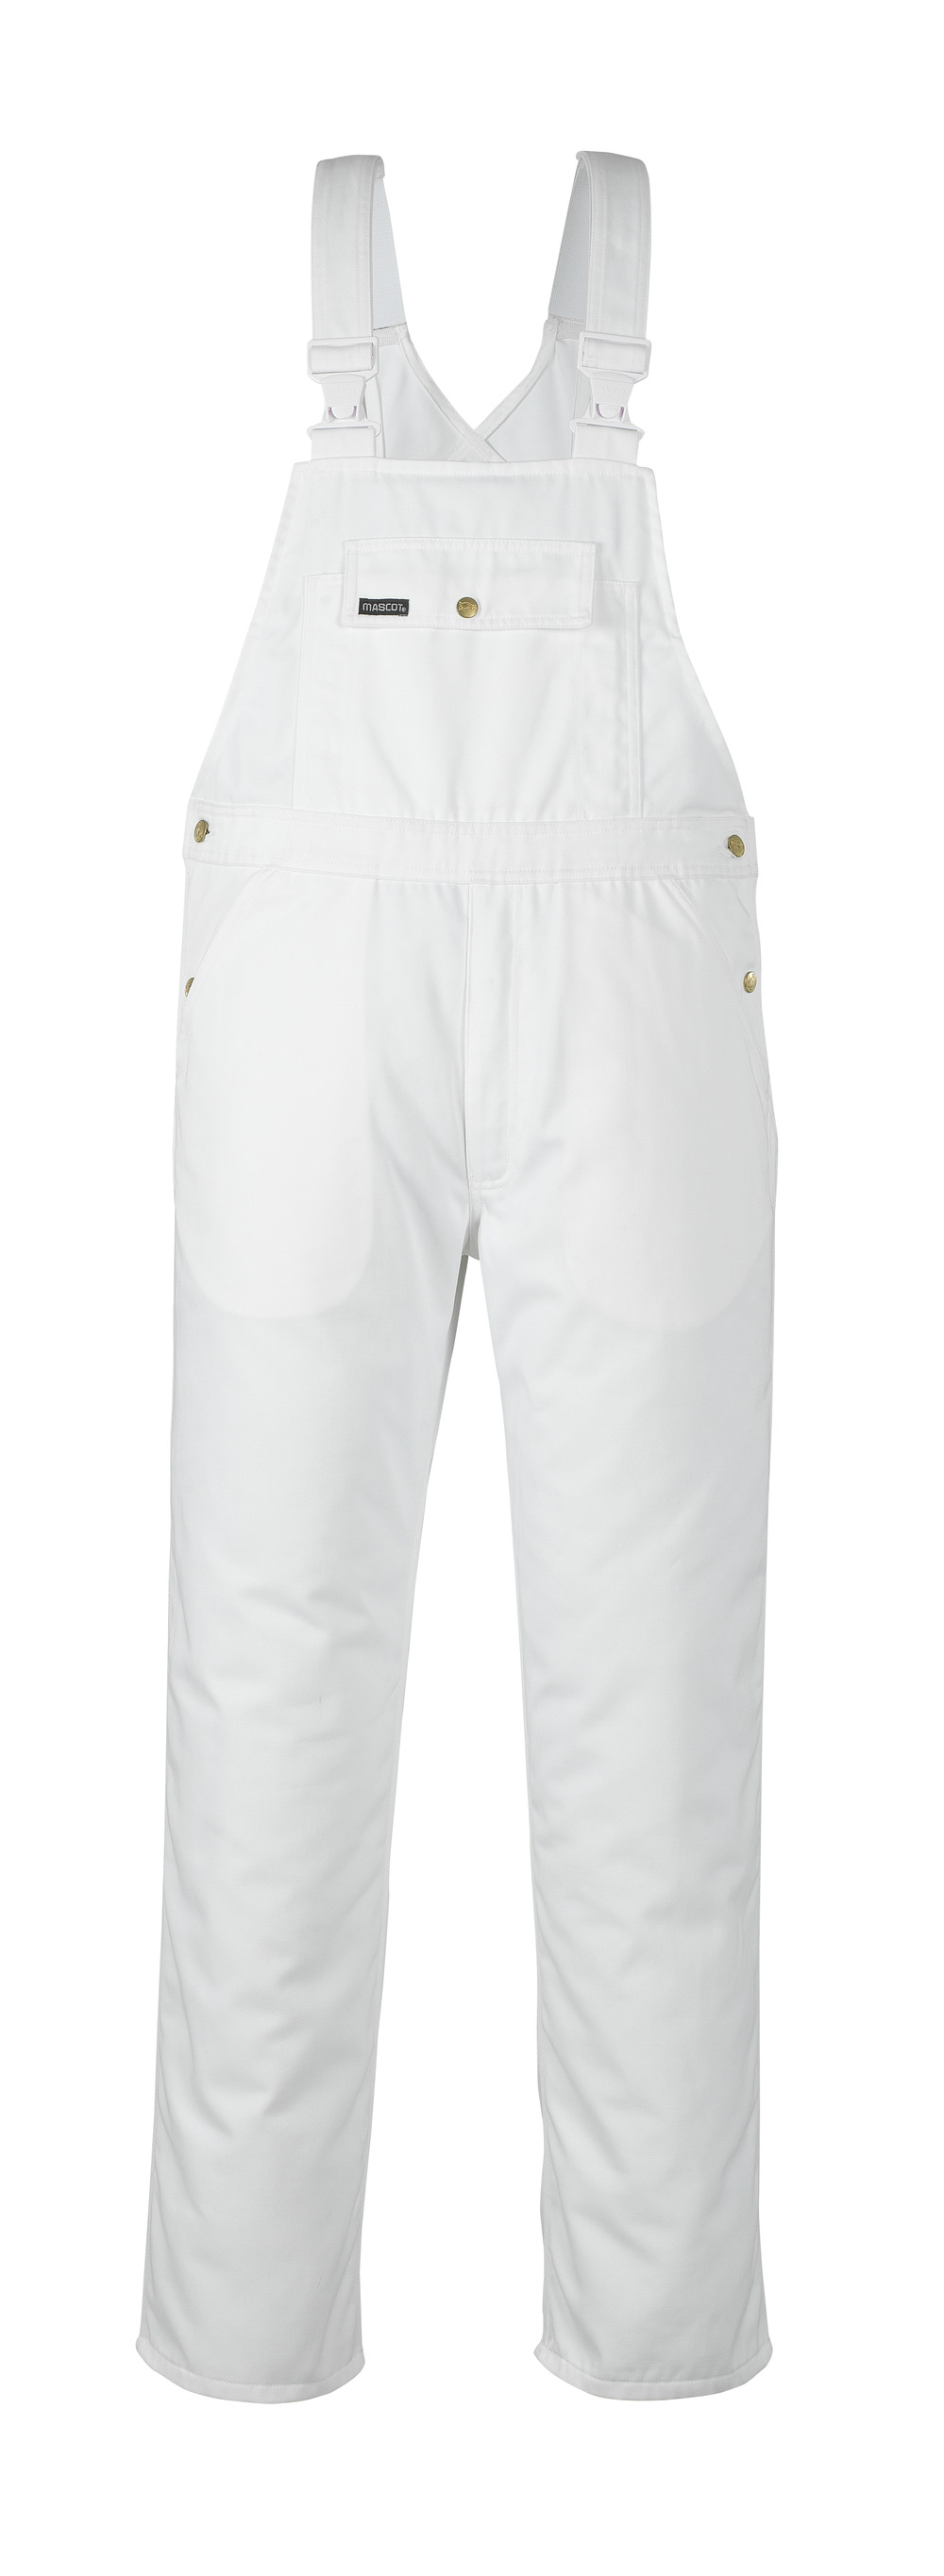 00569-430-06 Amerikaanse overall - wit